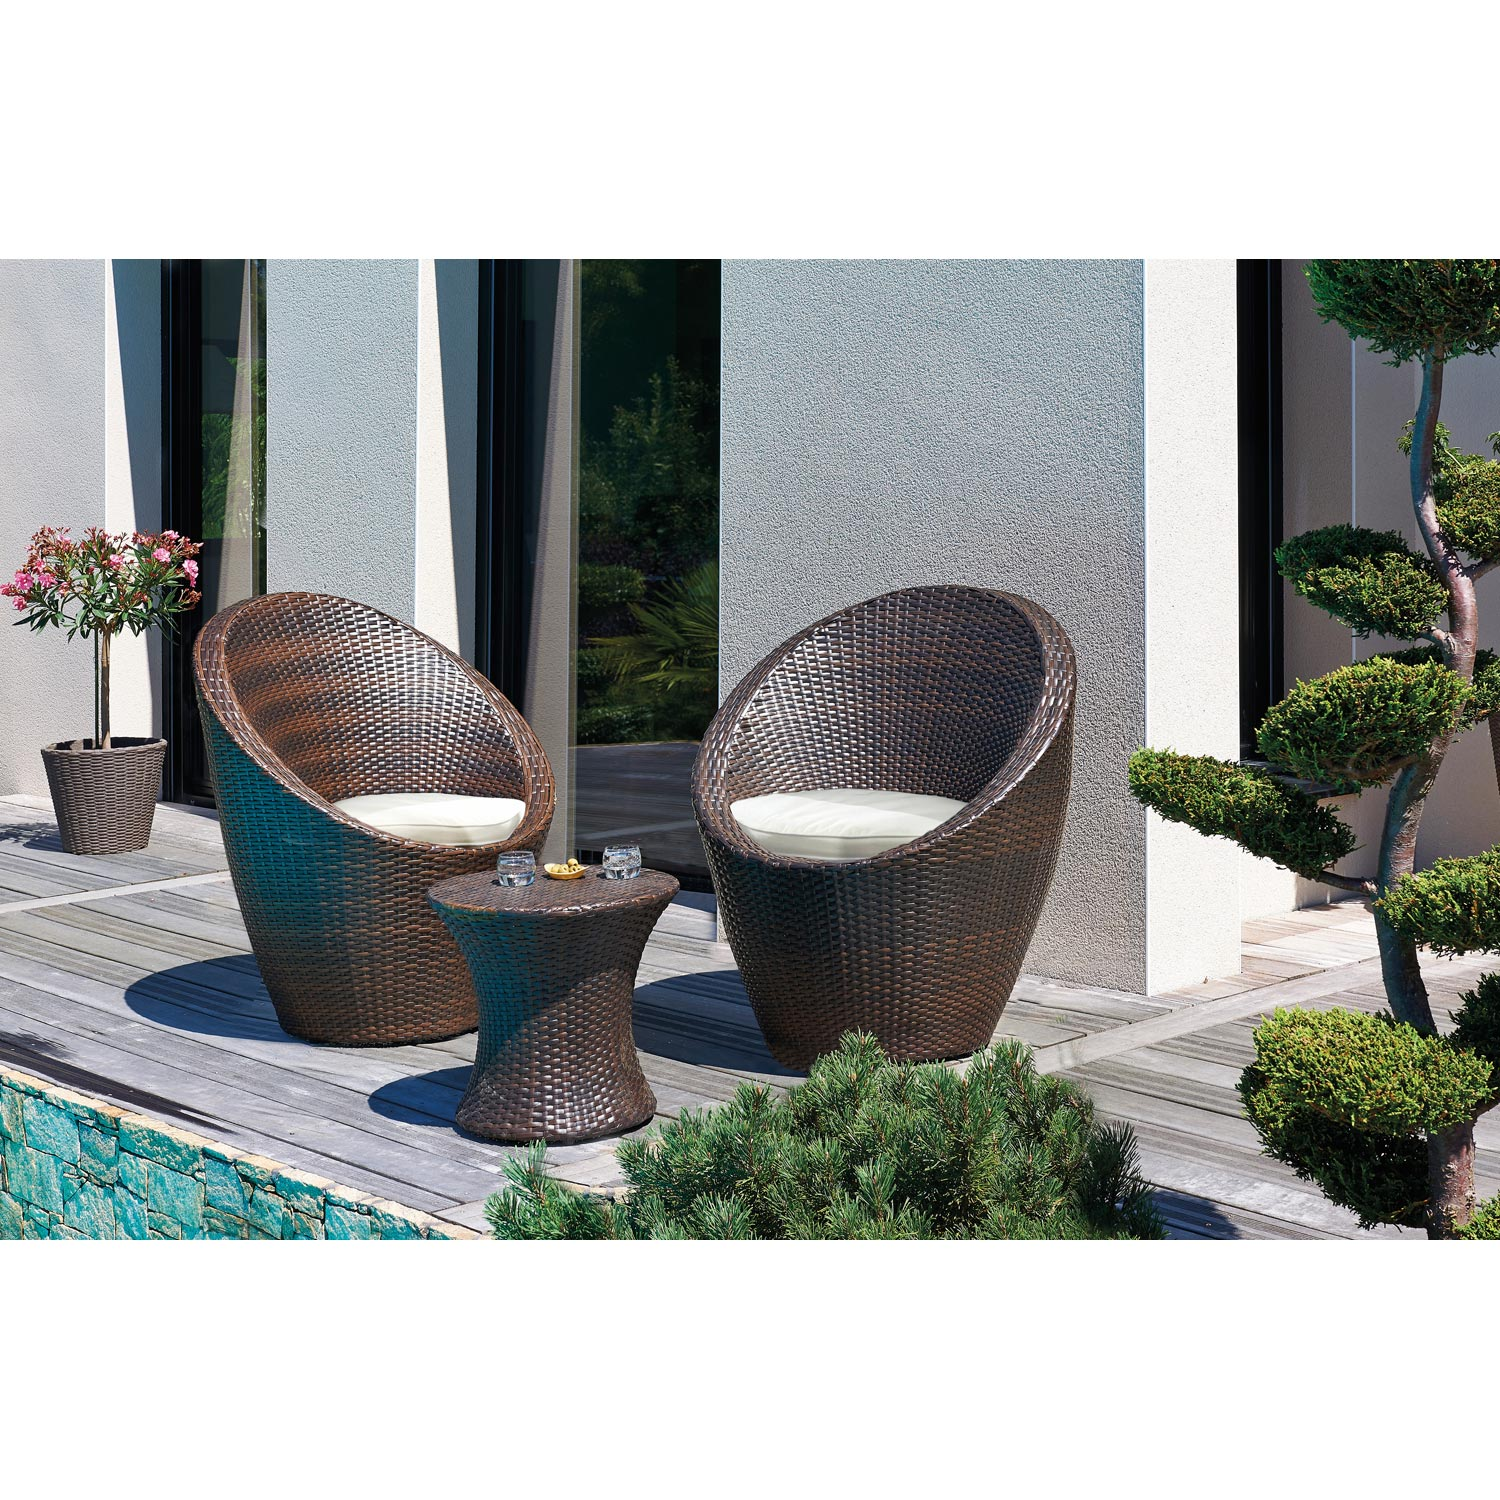 Salon bas de jardin totem r sine tress e chocolat 1 table 2 fauteuils leroy merlin Salon de jardin bas vila